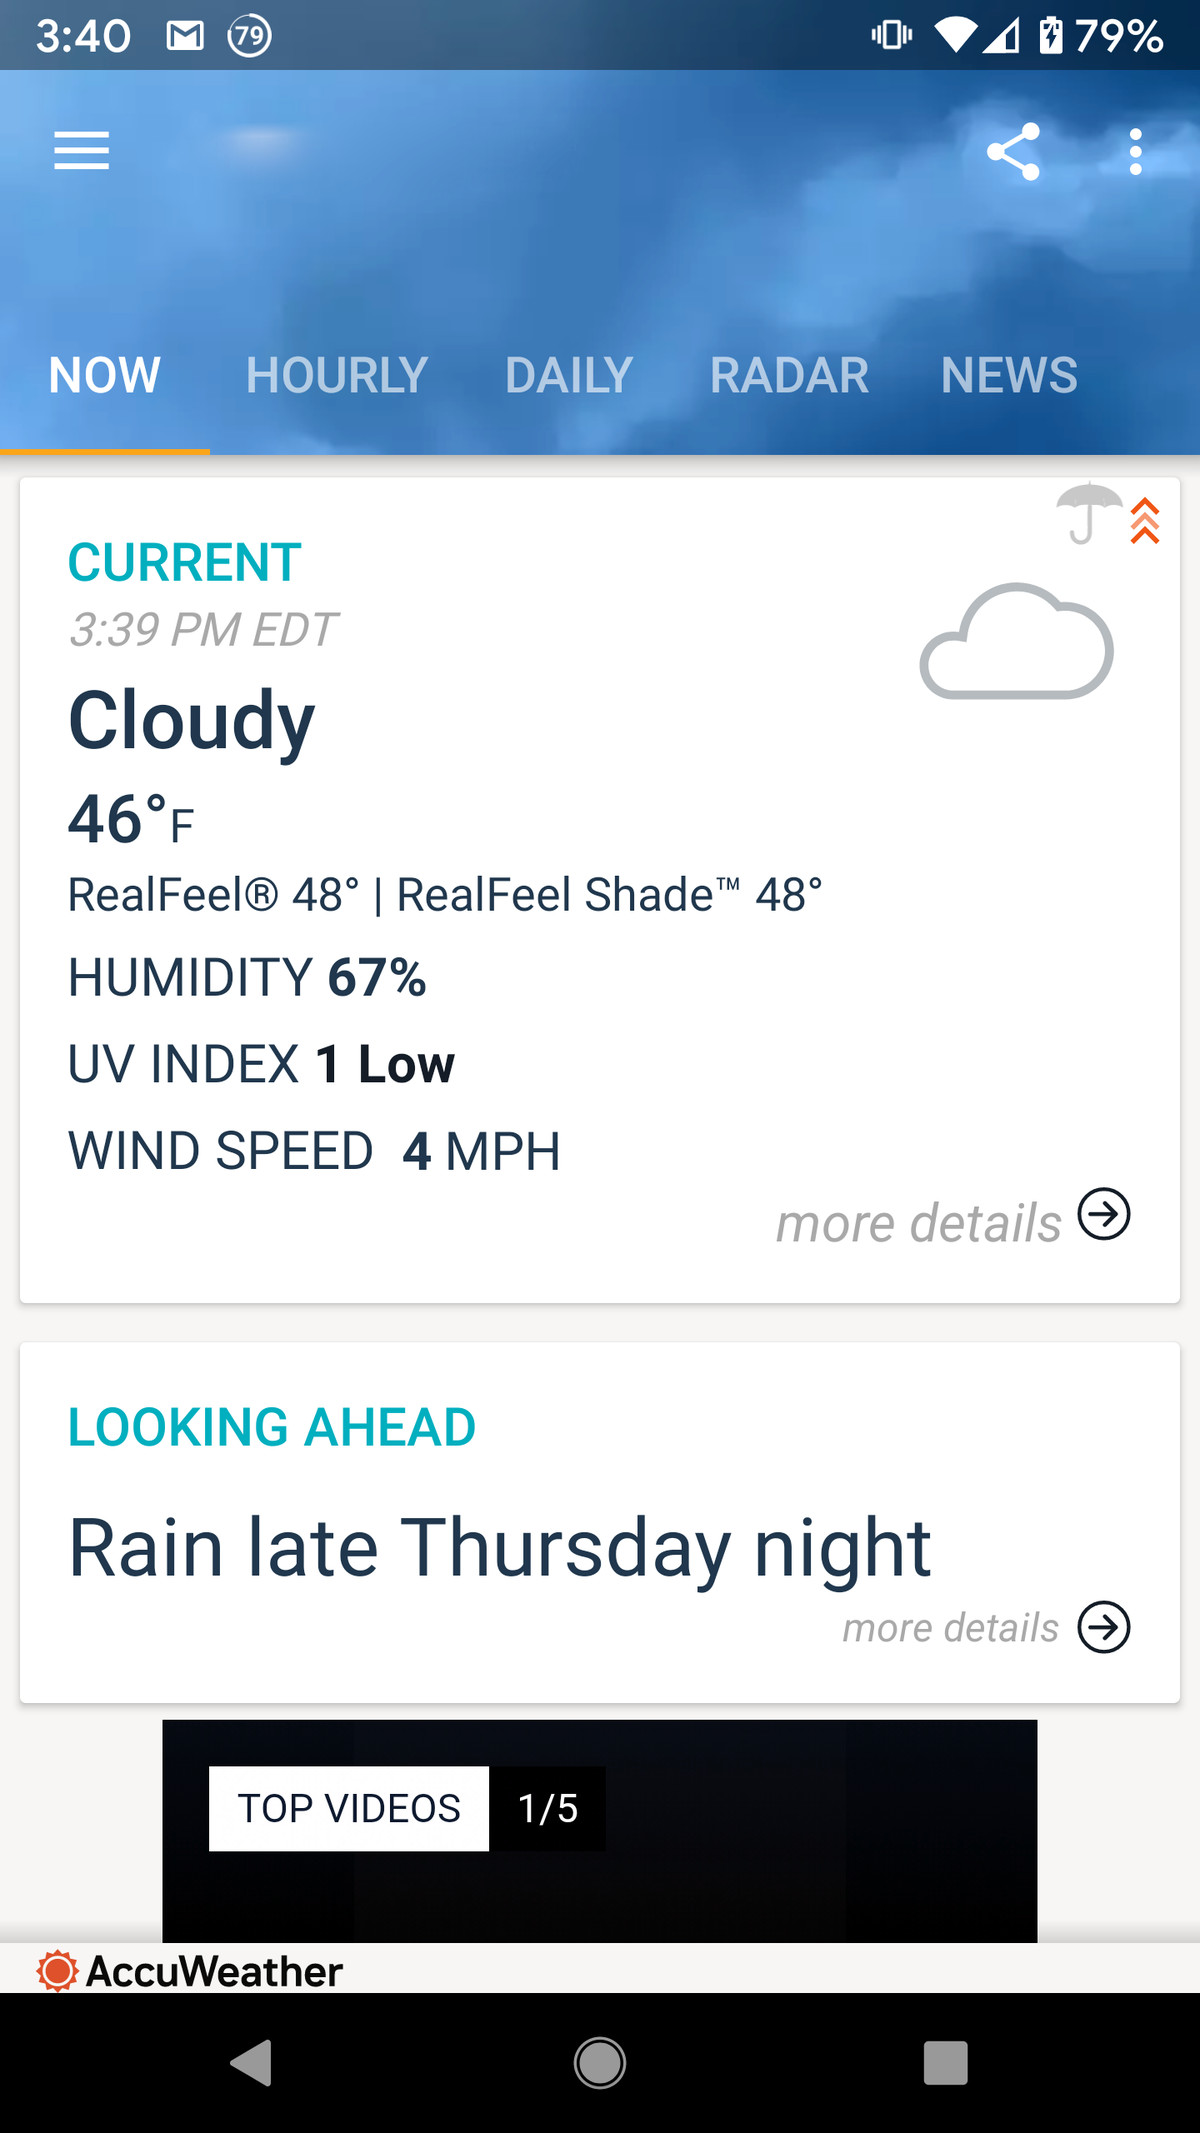 AccuWeather's app has an easily understood interface.